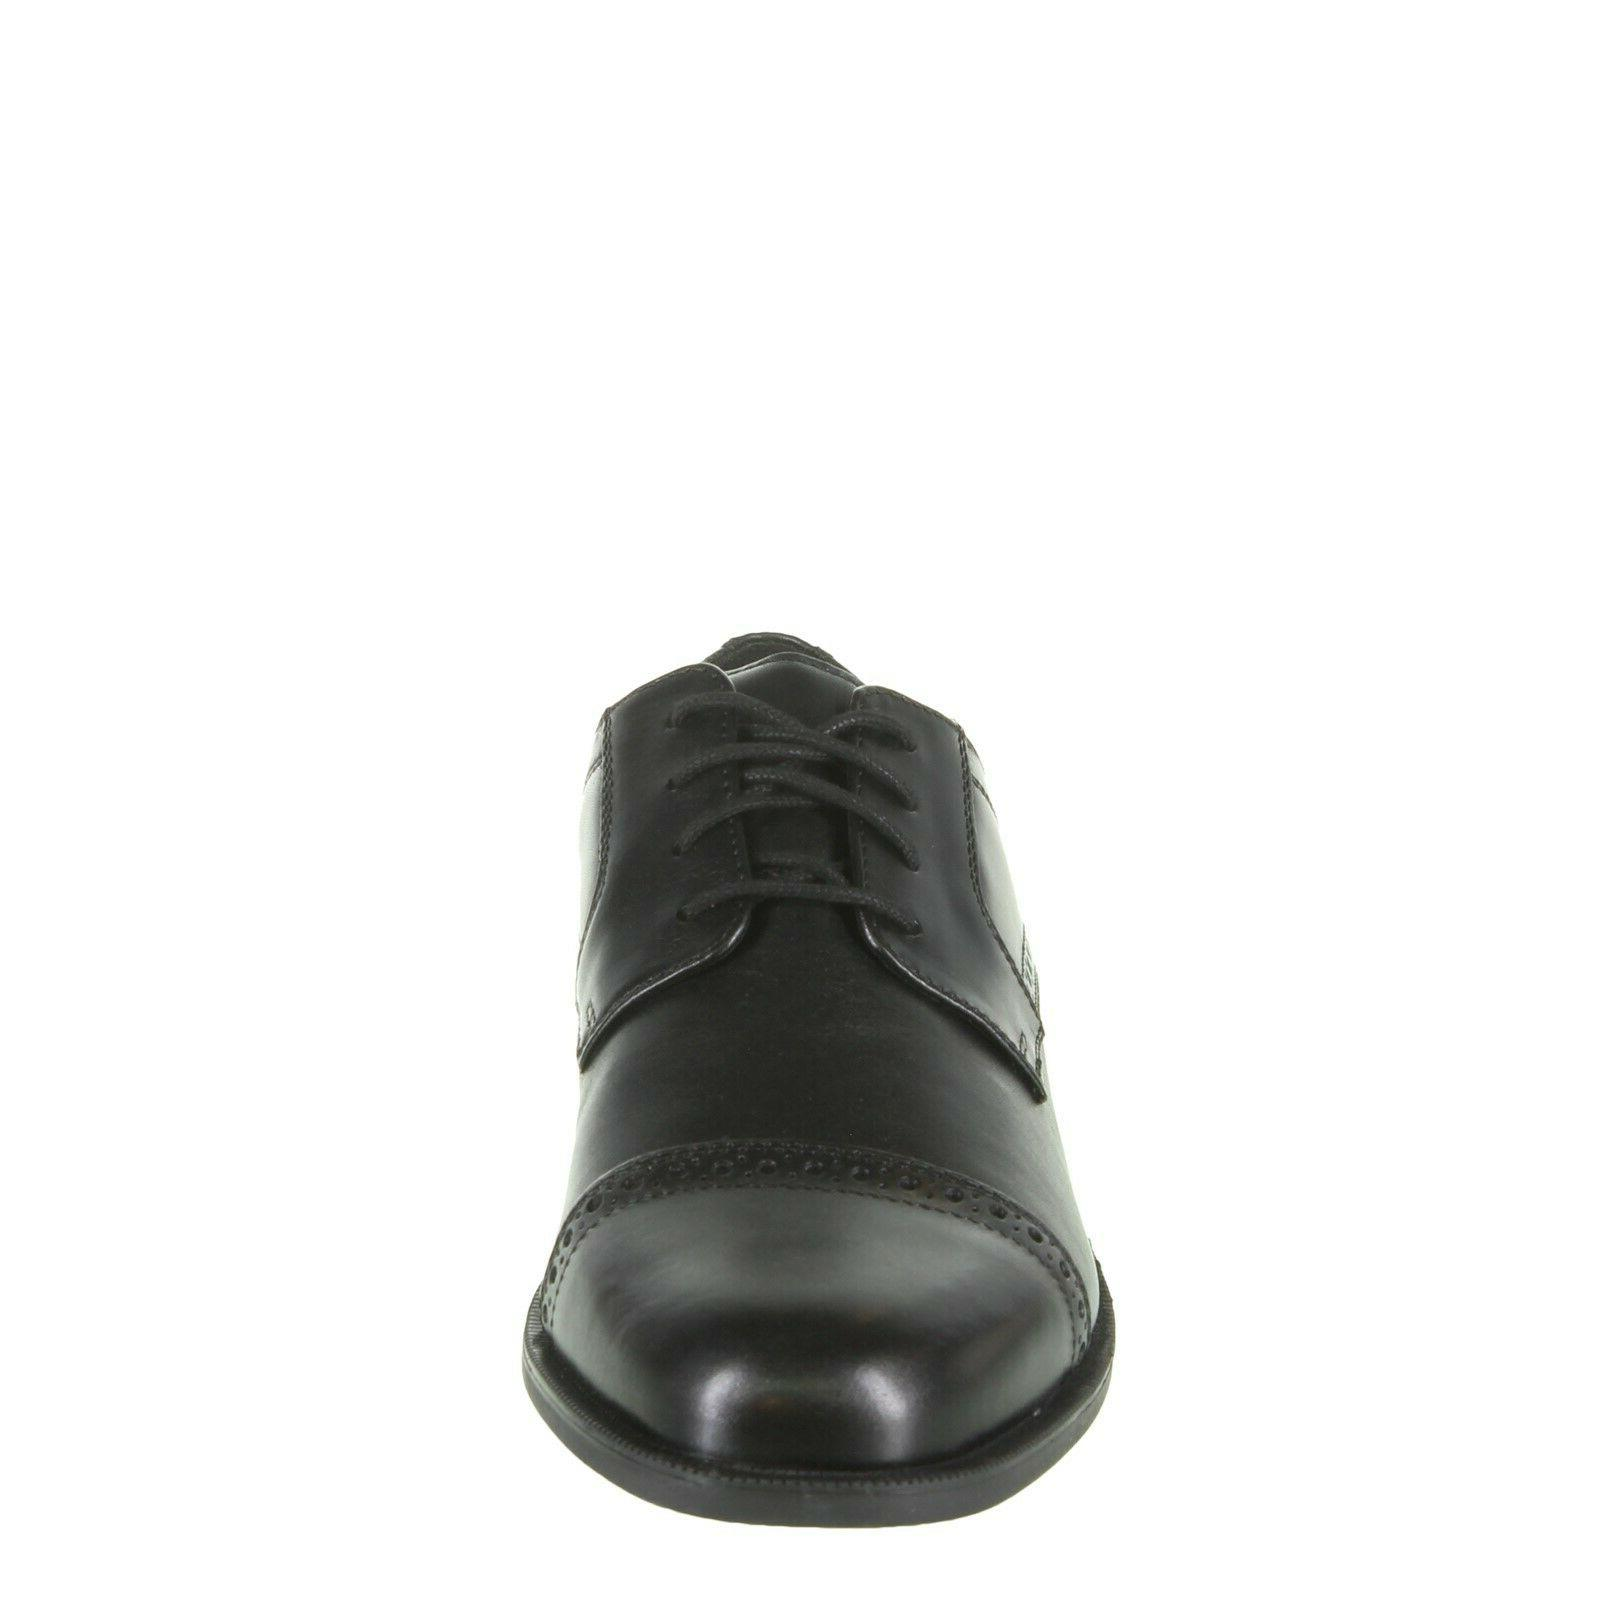 Cole Haan Shoes 11.5